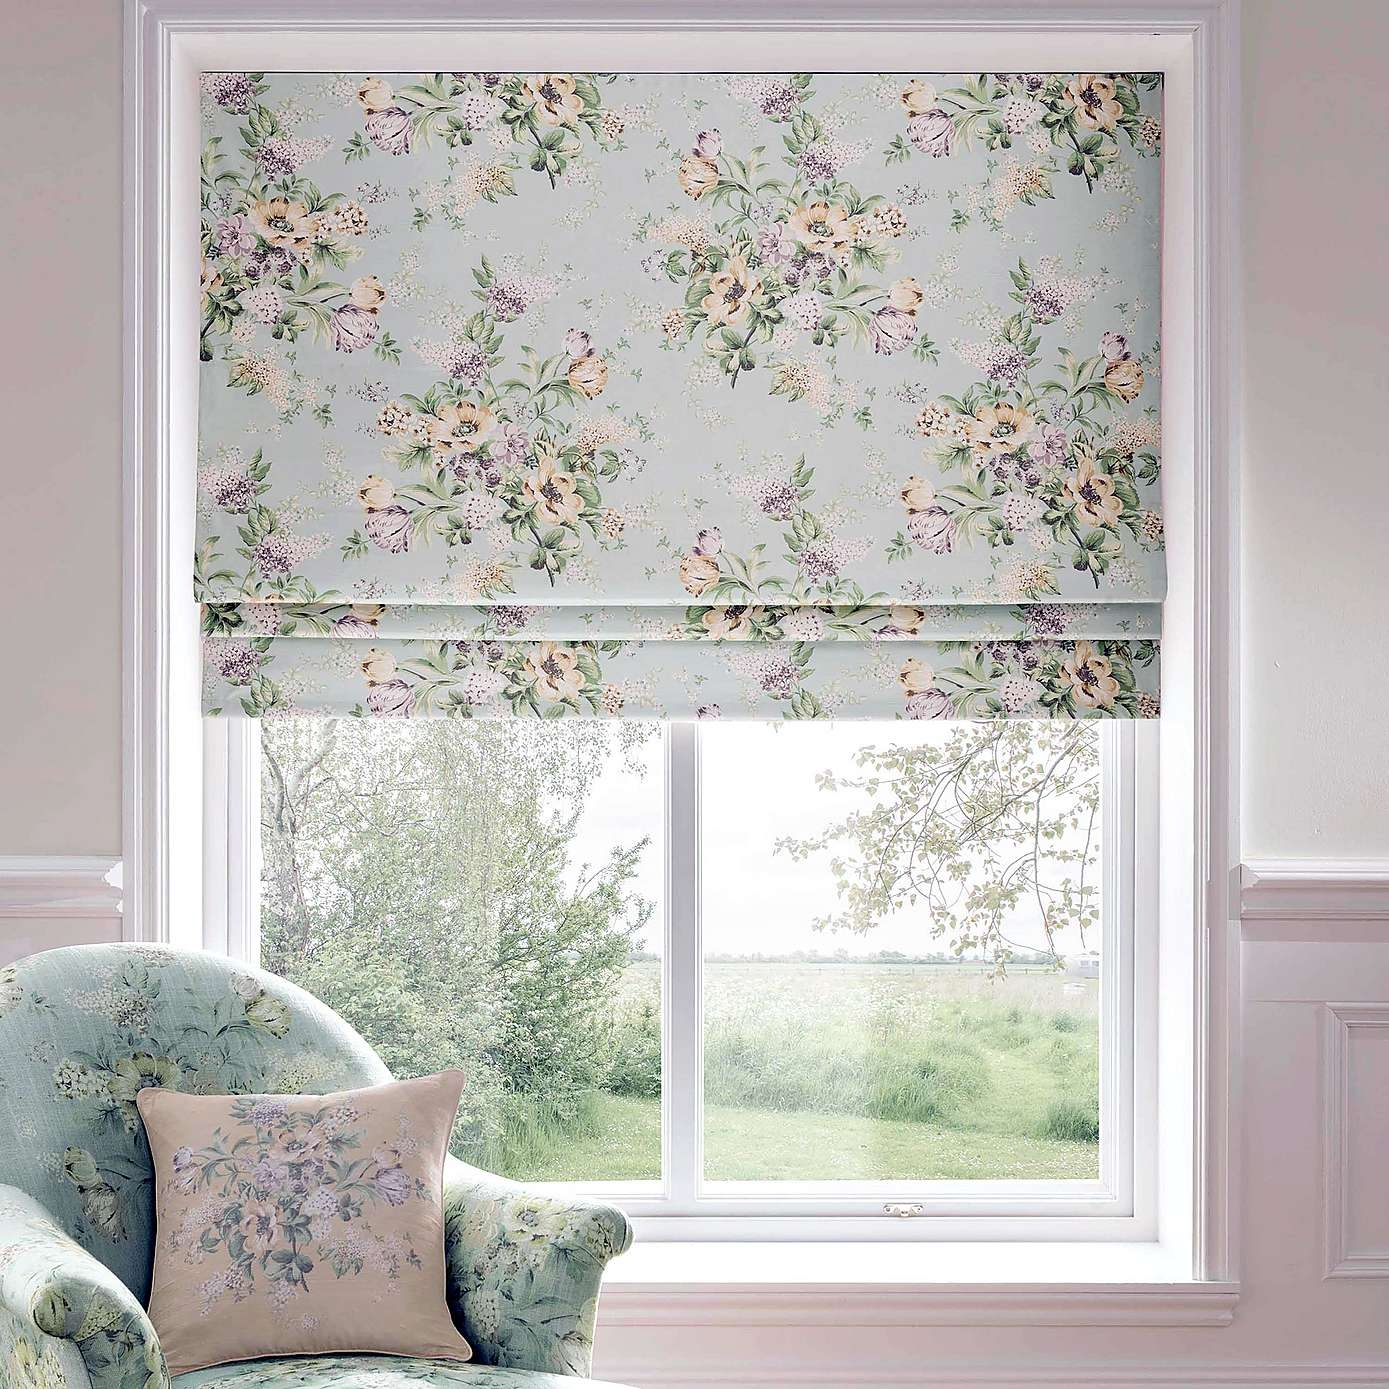 Dorma Brympton Duck Egg Roman Blind Dunelm Curtains Intended For Gingham Roman Blinds (View 11 of 15)